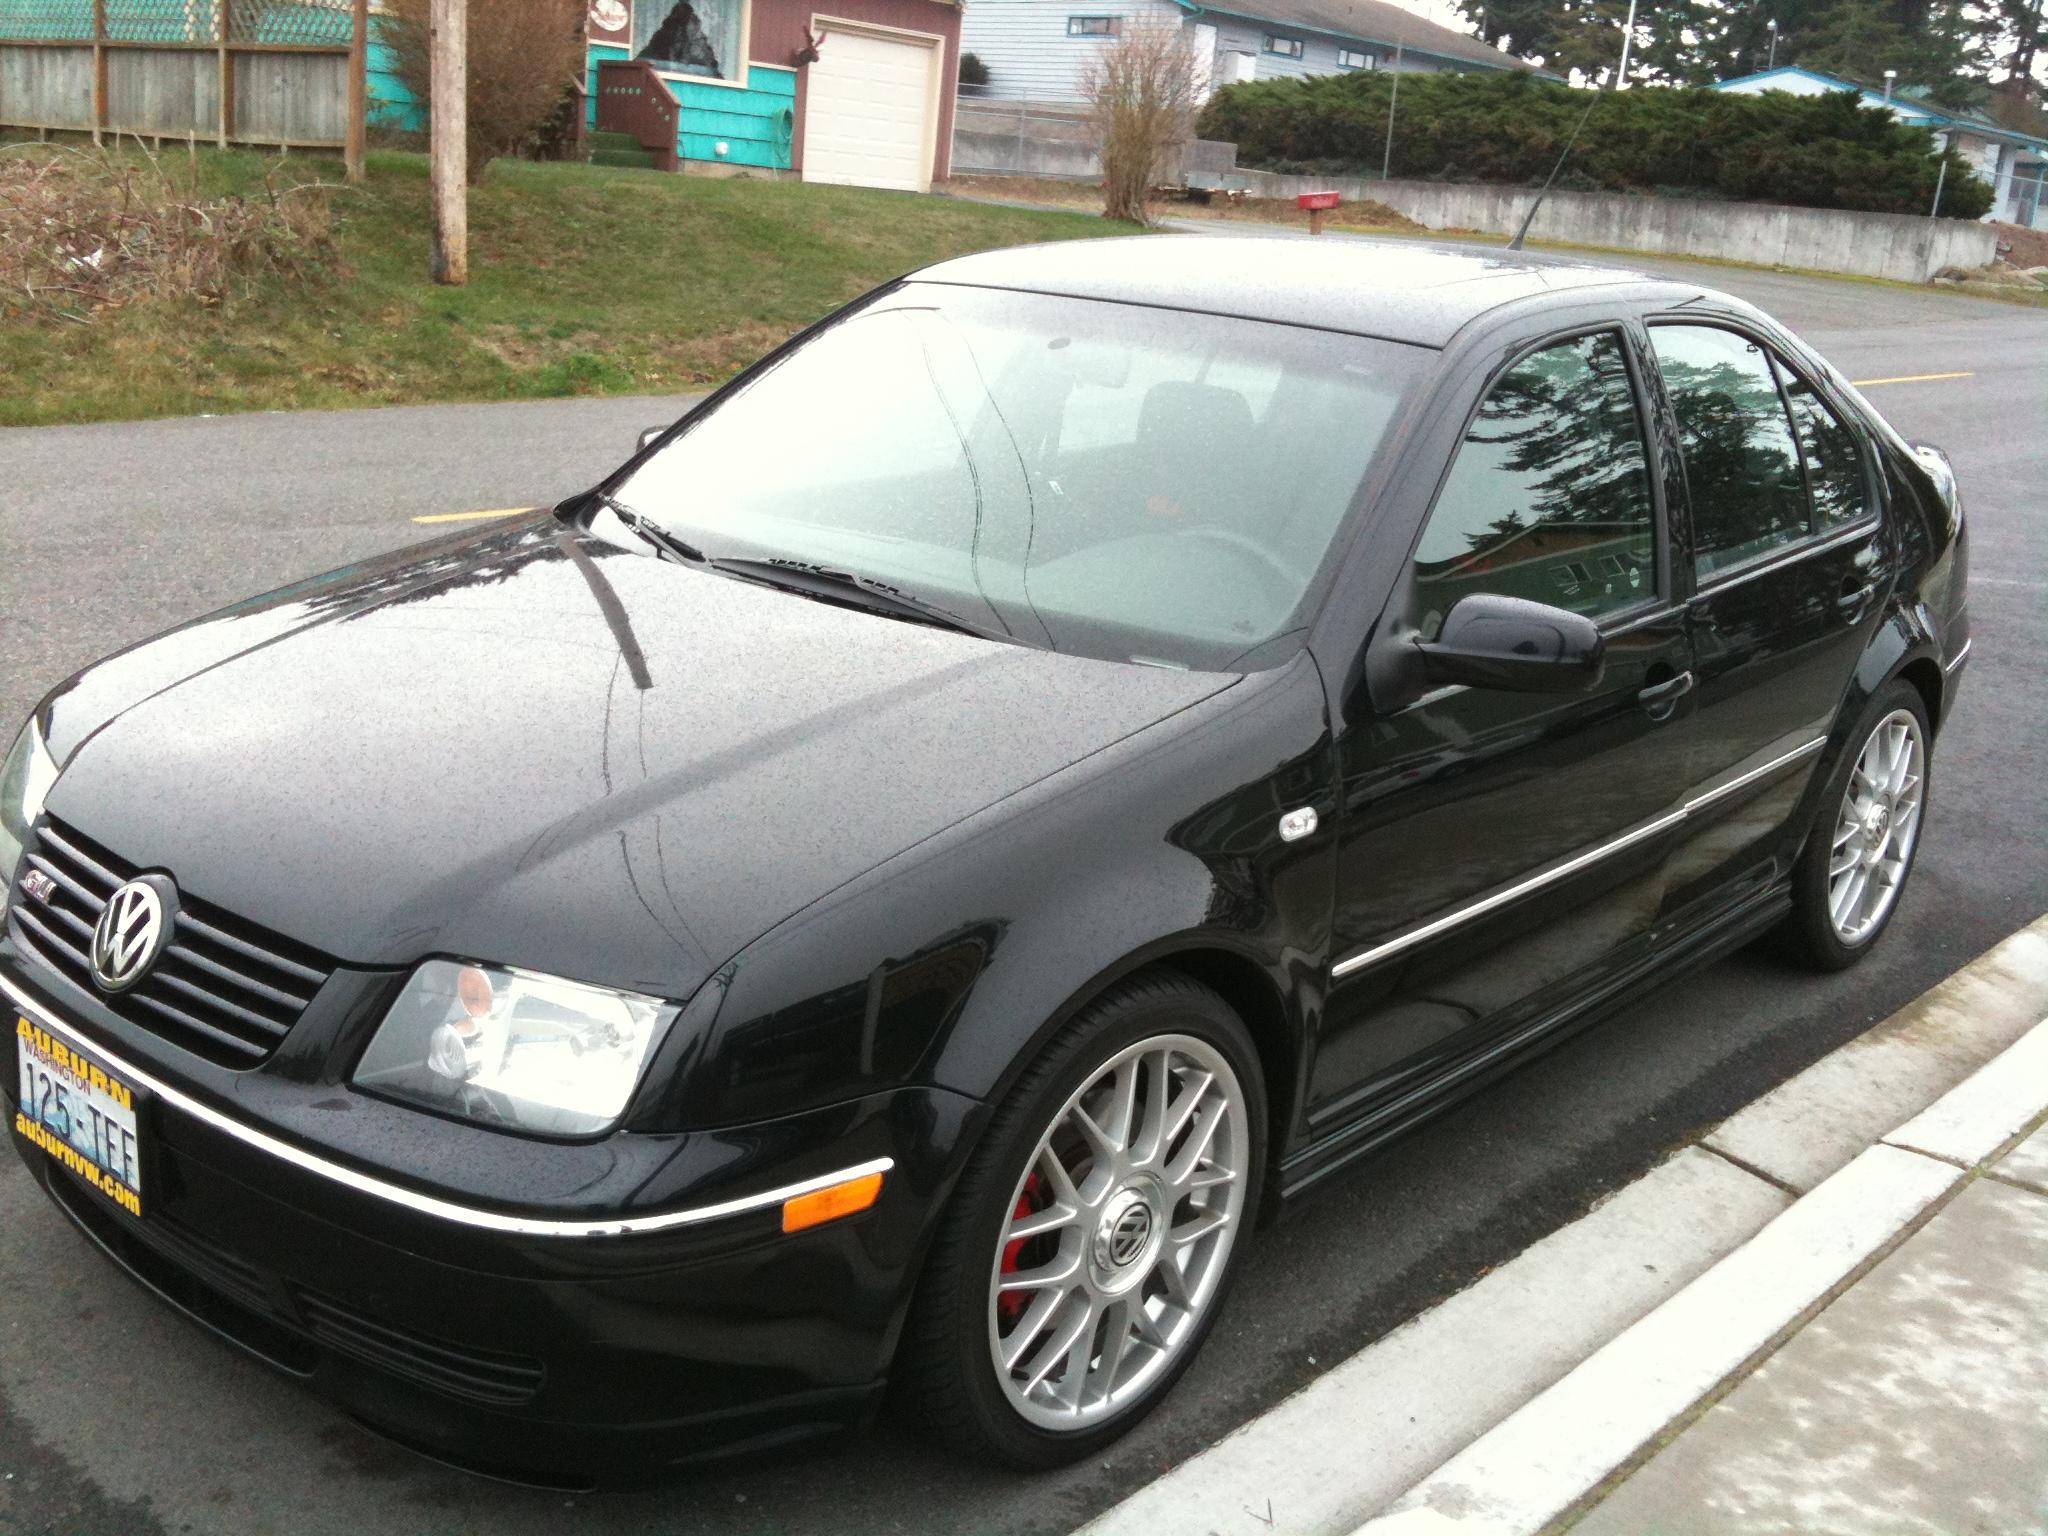 steventura86 2005 Volkswagen Jetta Specs, Photos, Modification Info at CarDomain